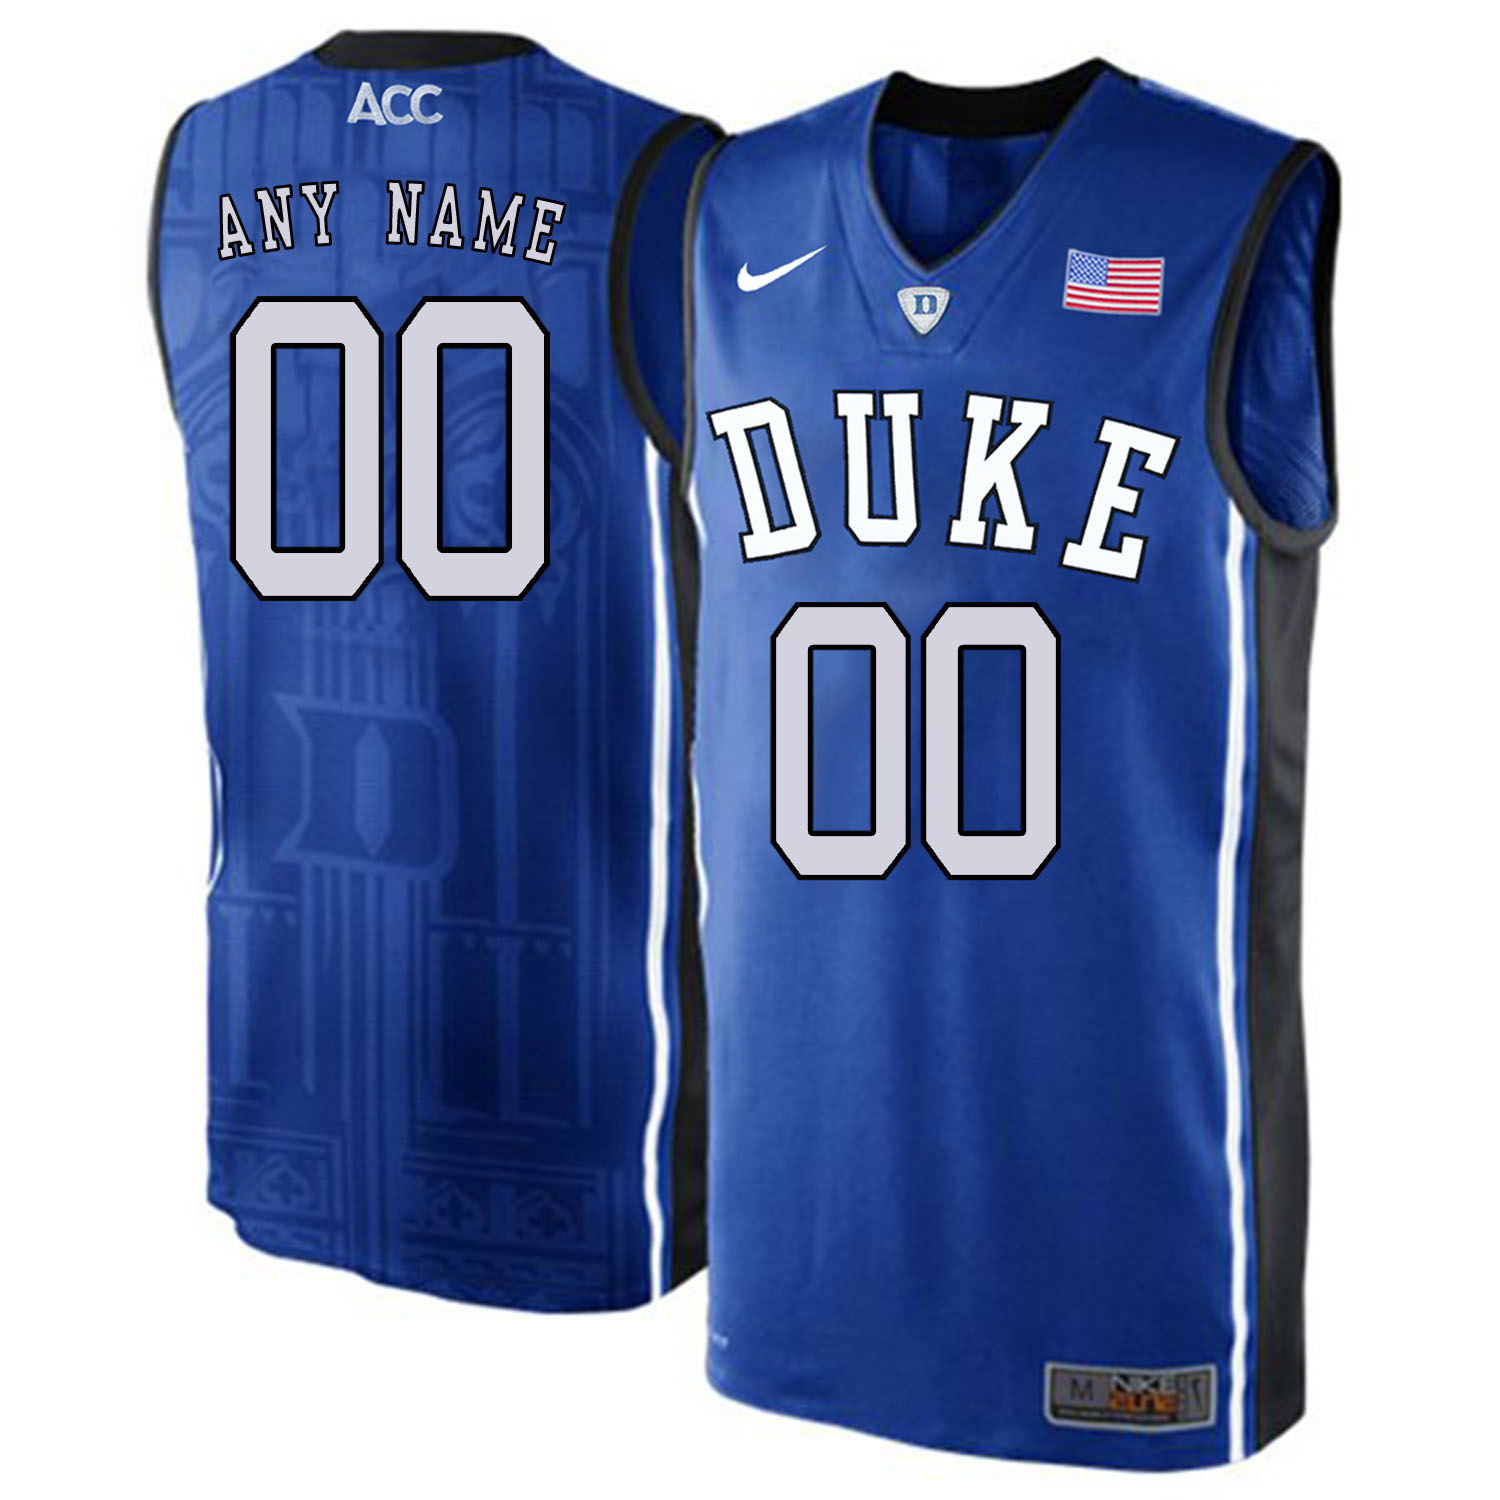 Duke Blue Devils Men's Customized Blue Elite Nike College Basketball Jersey